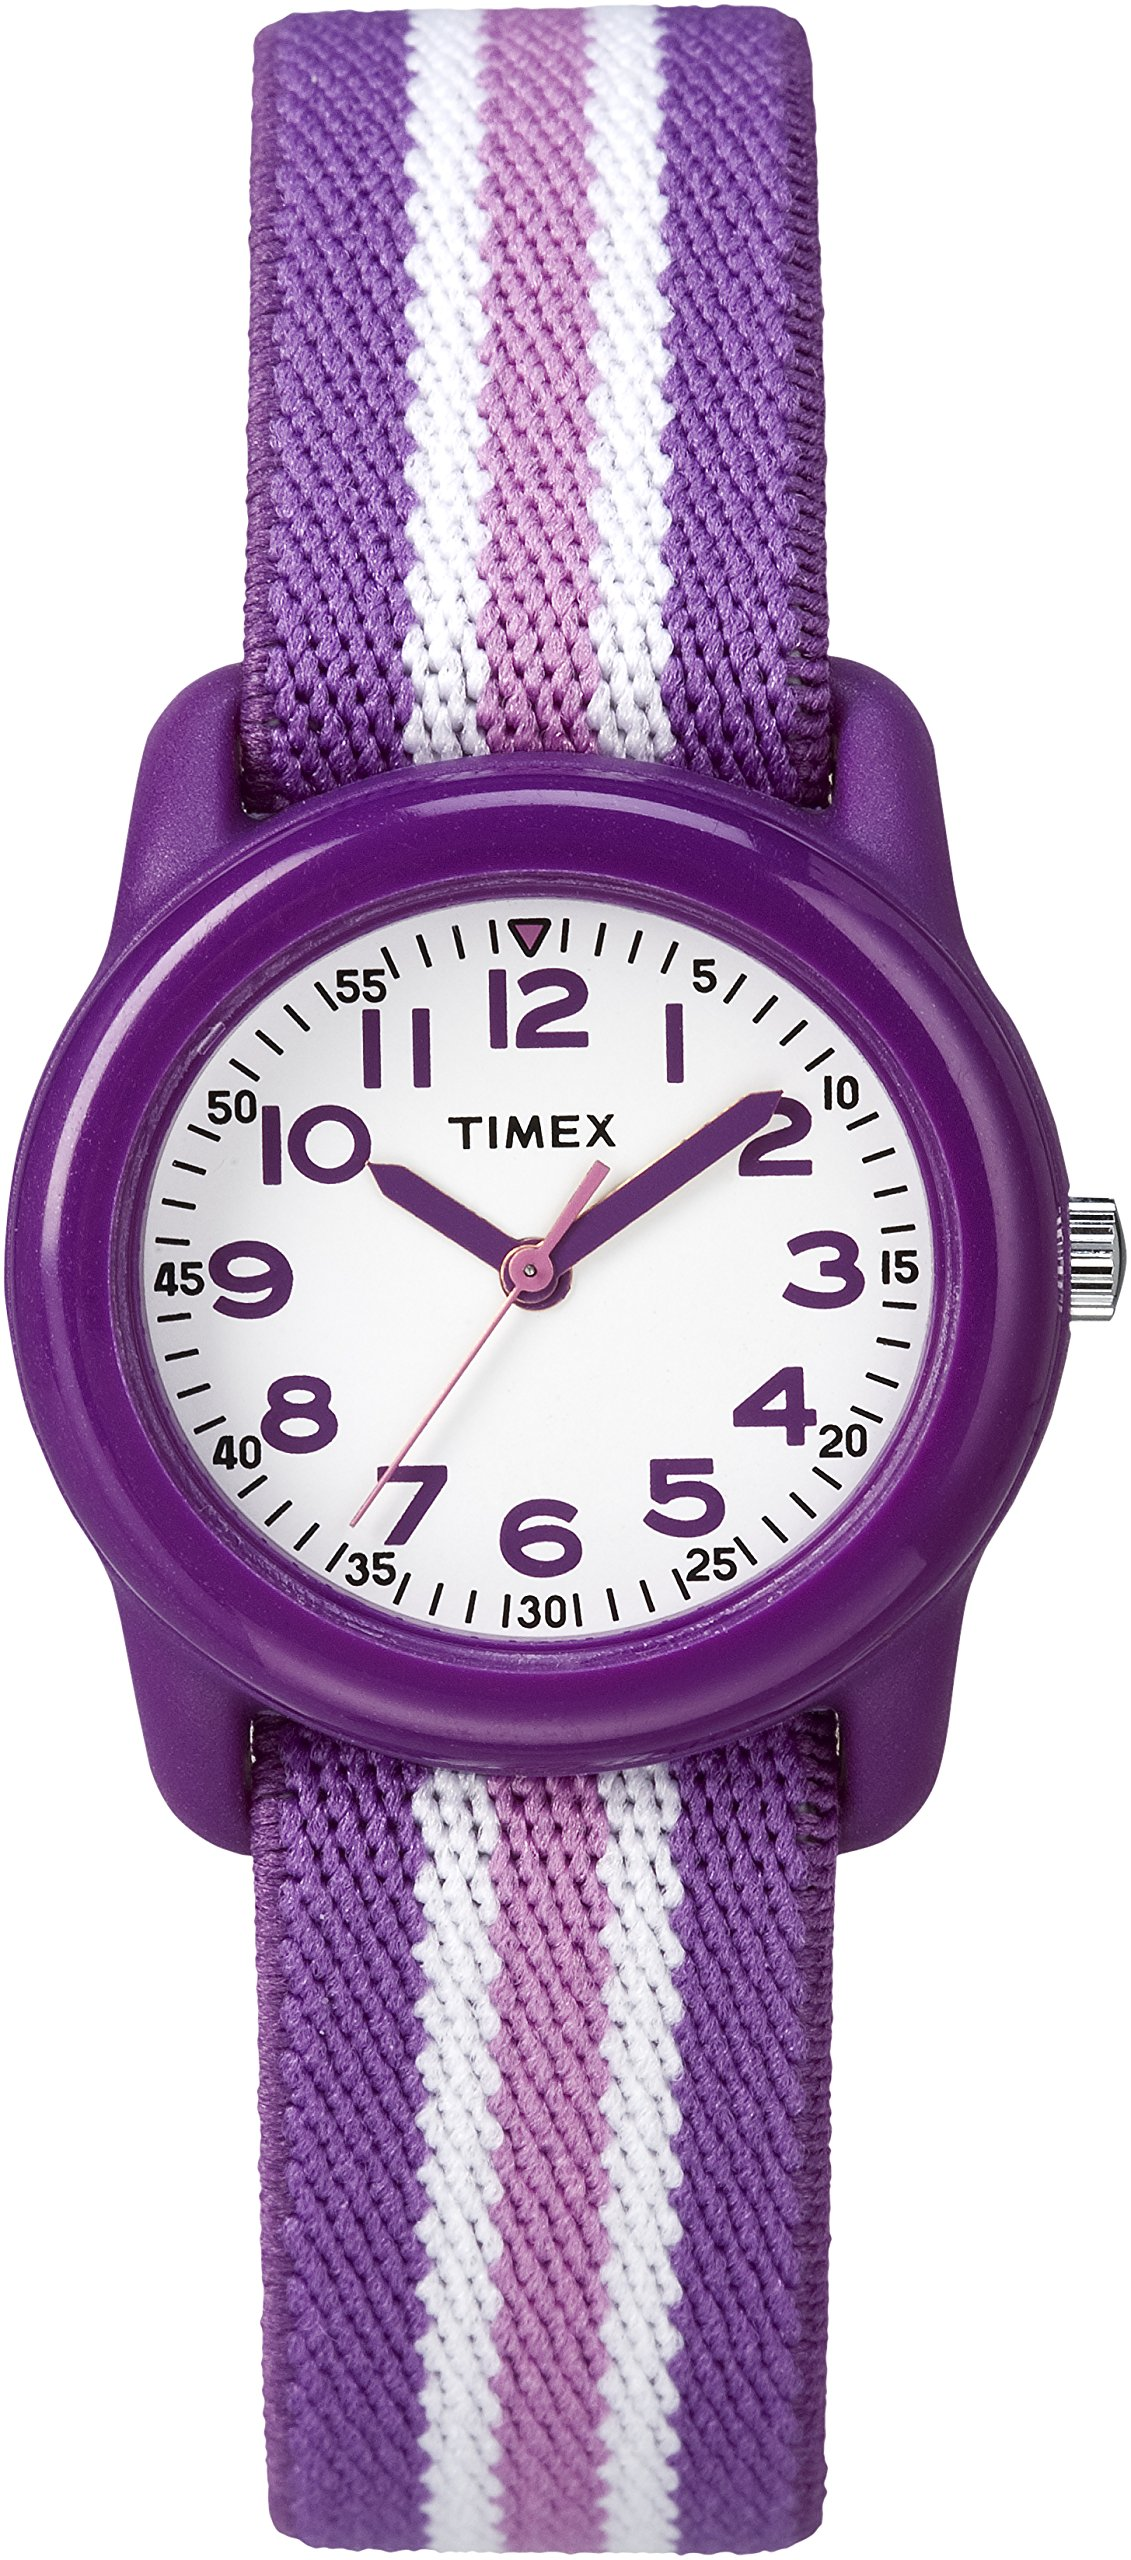 Timex Girls TW7C06100 Time Machines Analog Resin Purple/Pink Stripes Elastic Fabric Strap Watch by Timex